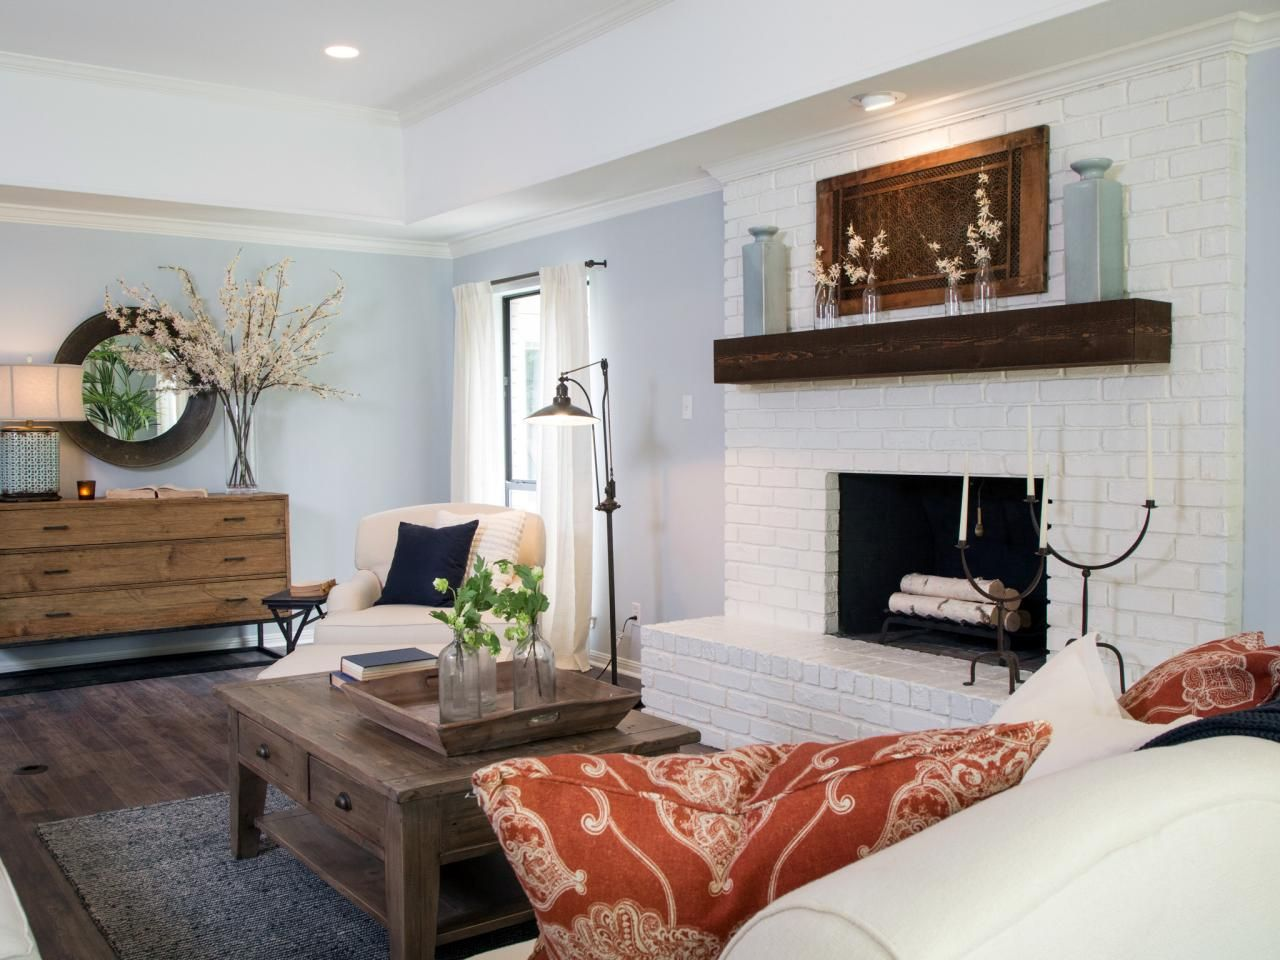 White Fireplace In The Living Room Recessed Spots Provide Accent Lighting And Is Updated With A Float Mounted Wood Mantel